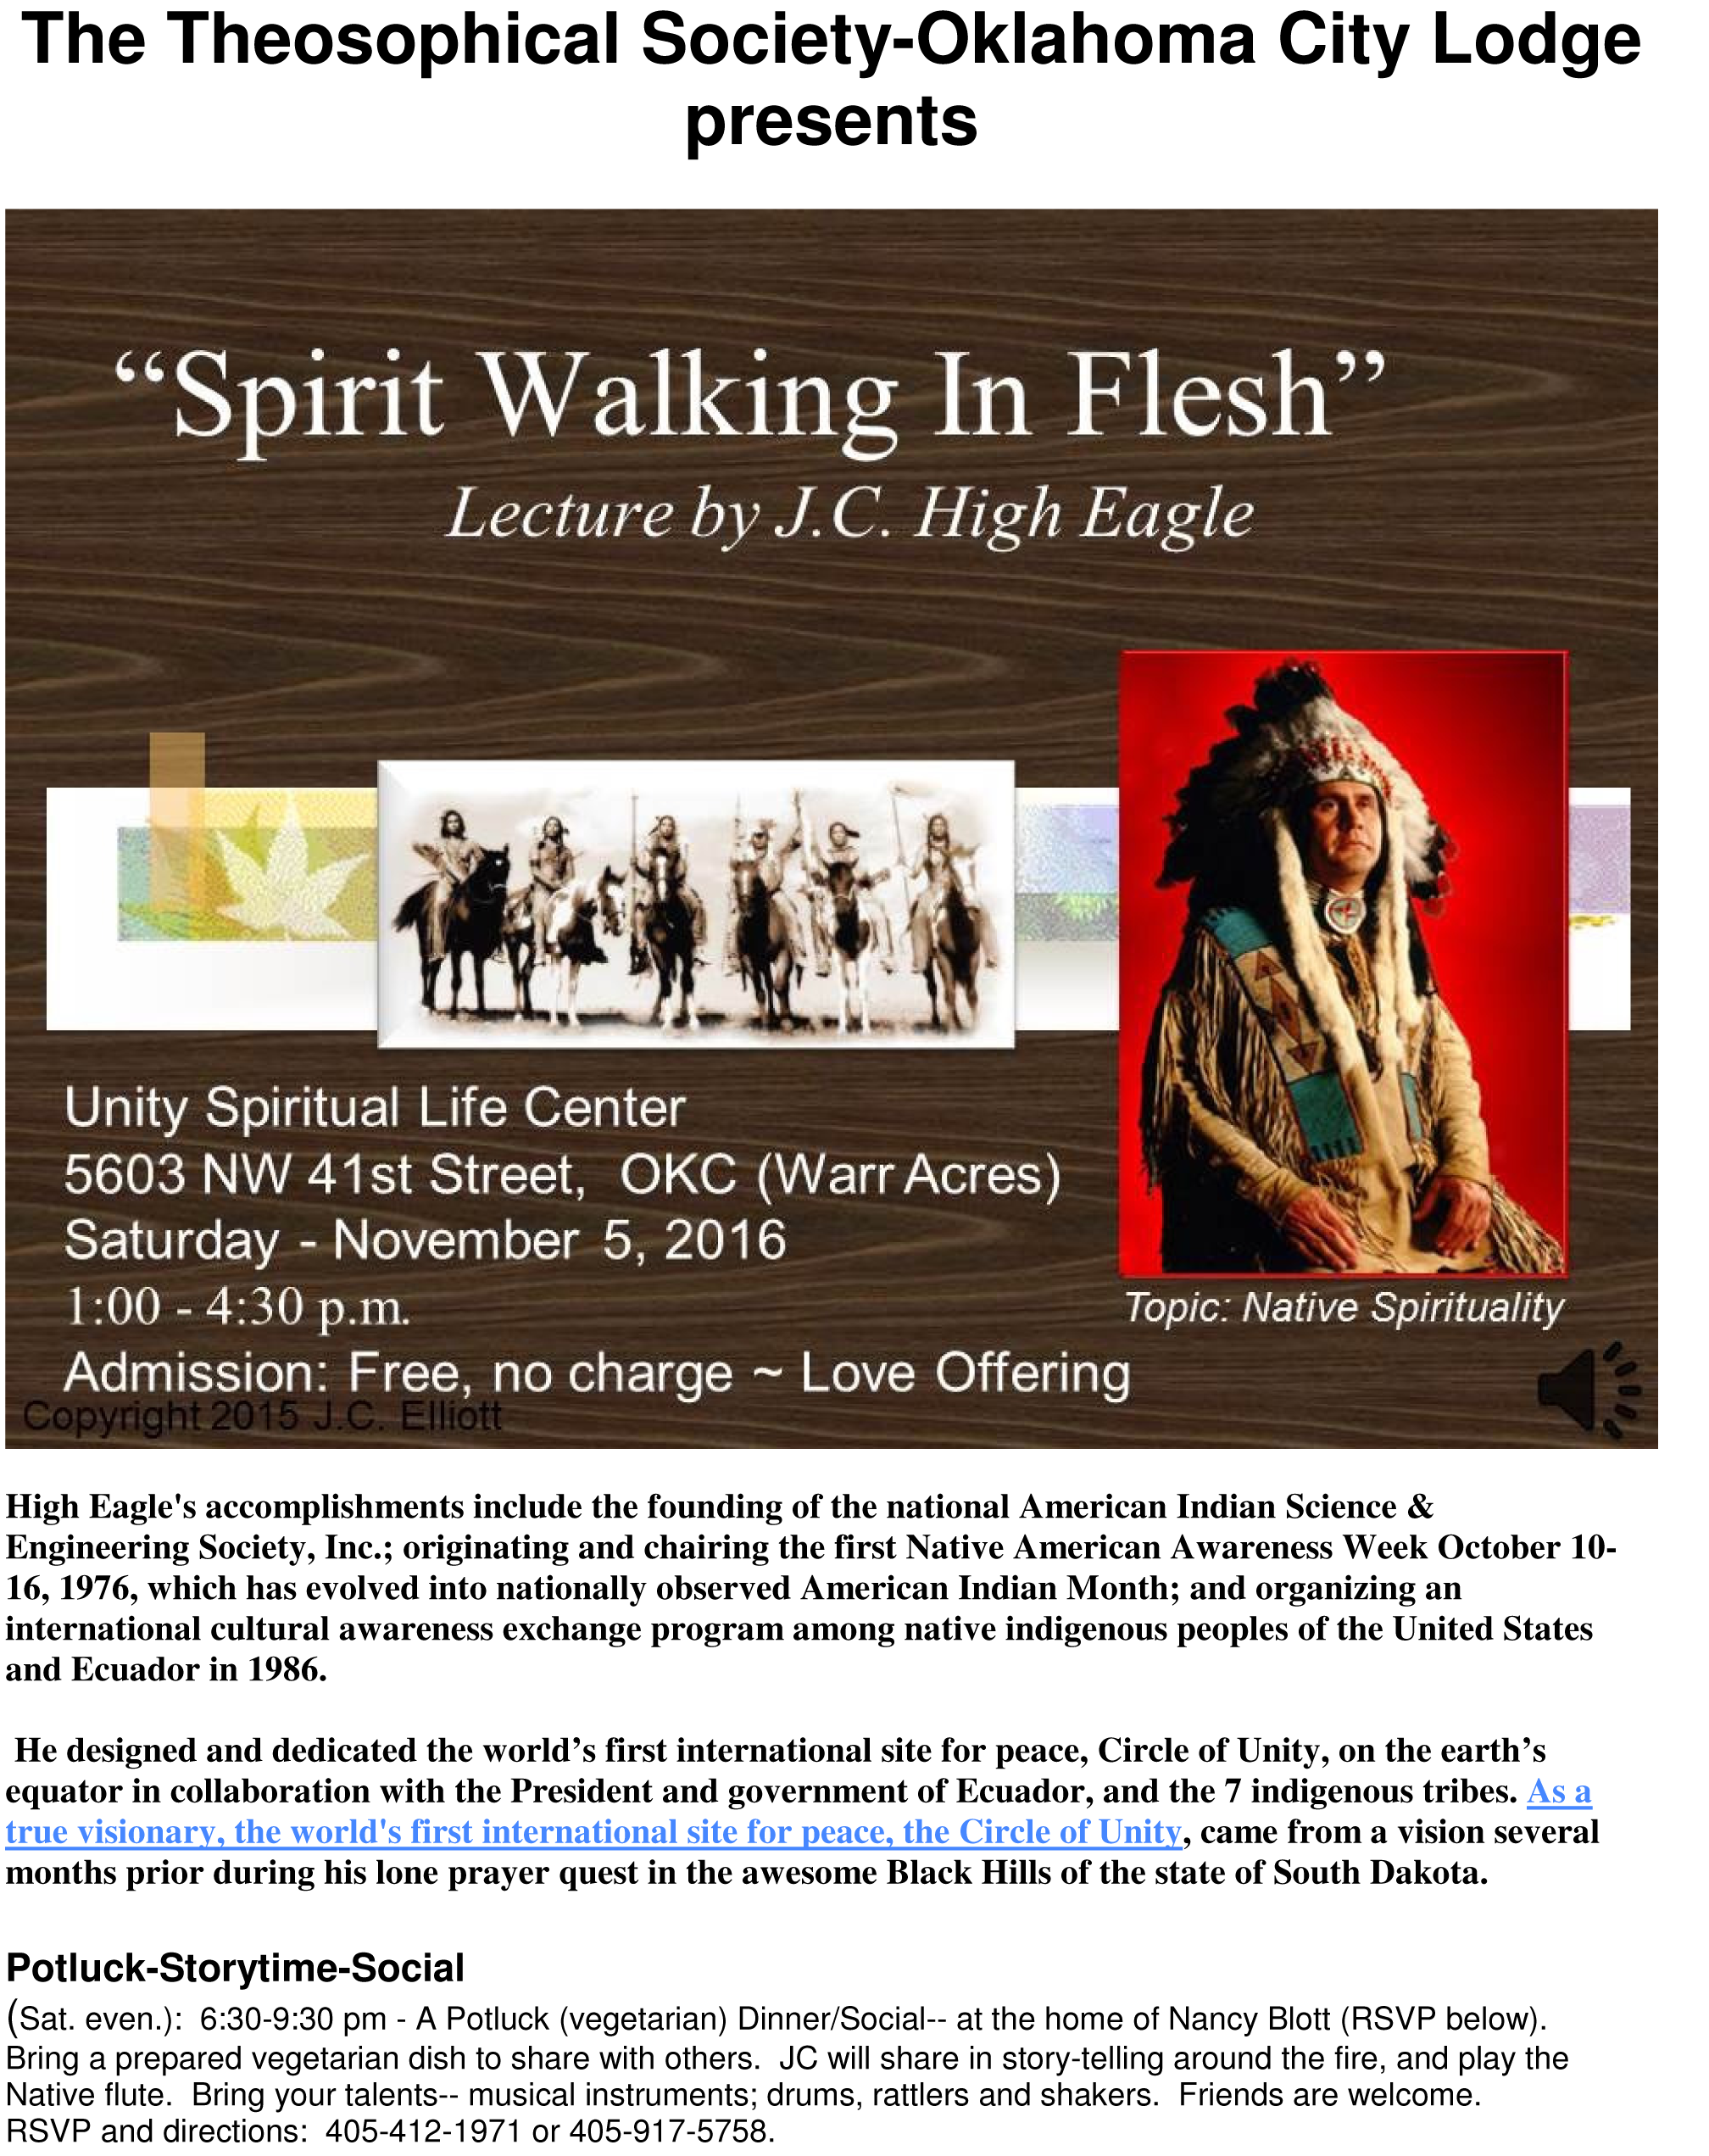 https://www.theosophical.org/images/stories/enews/October2016/Spirit-Walking-in-Flesh__--JC-High-Eagleflyer-11_5_2016.png